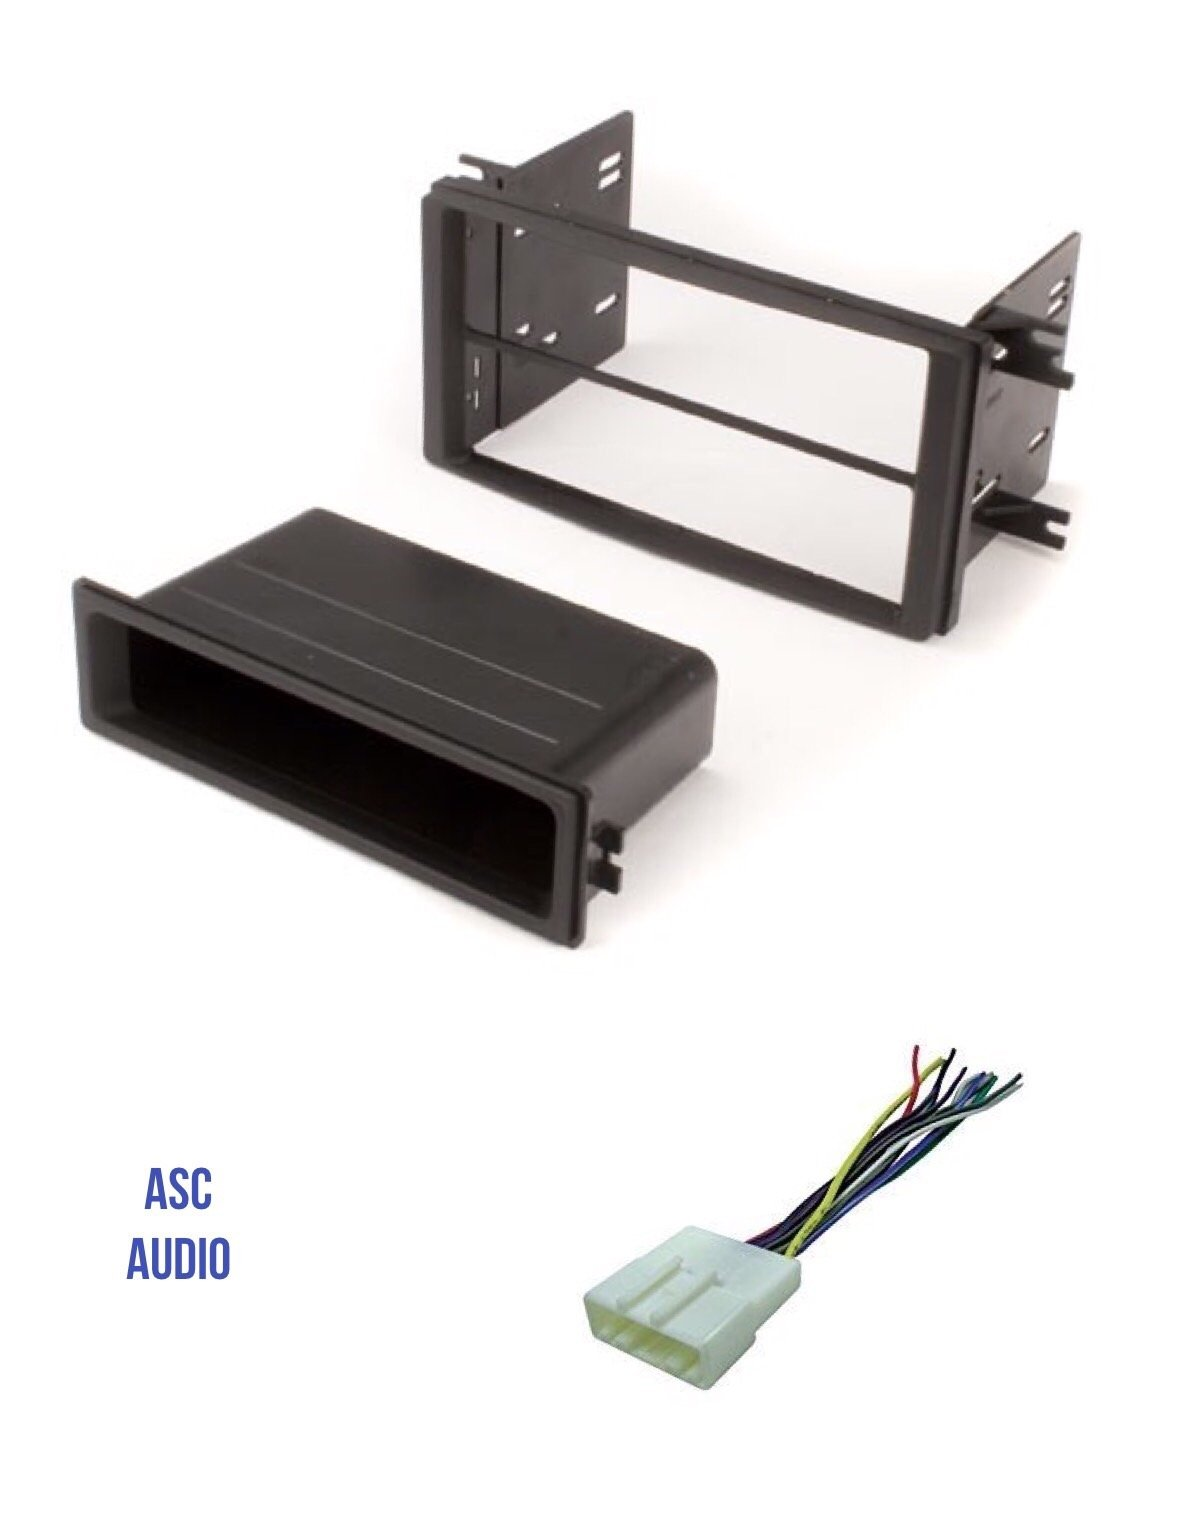 ASC Car Stereo Install Dash Kit and Wire Harness for installing an Aftermarket Single or Double Din Radio for 2009-2013 Subaru Forester, 2008-2011 Subaru Impreza, 2008-2014 Subaru WRX - No Factory NAV